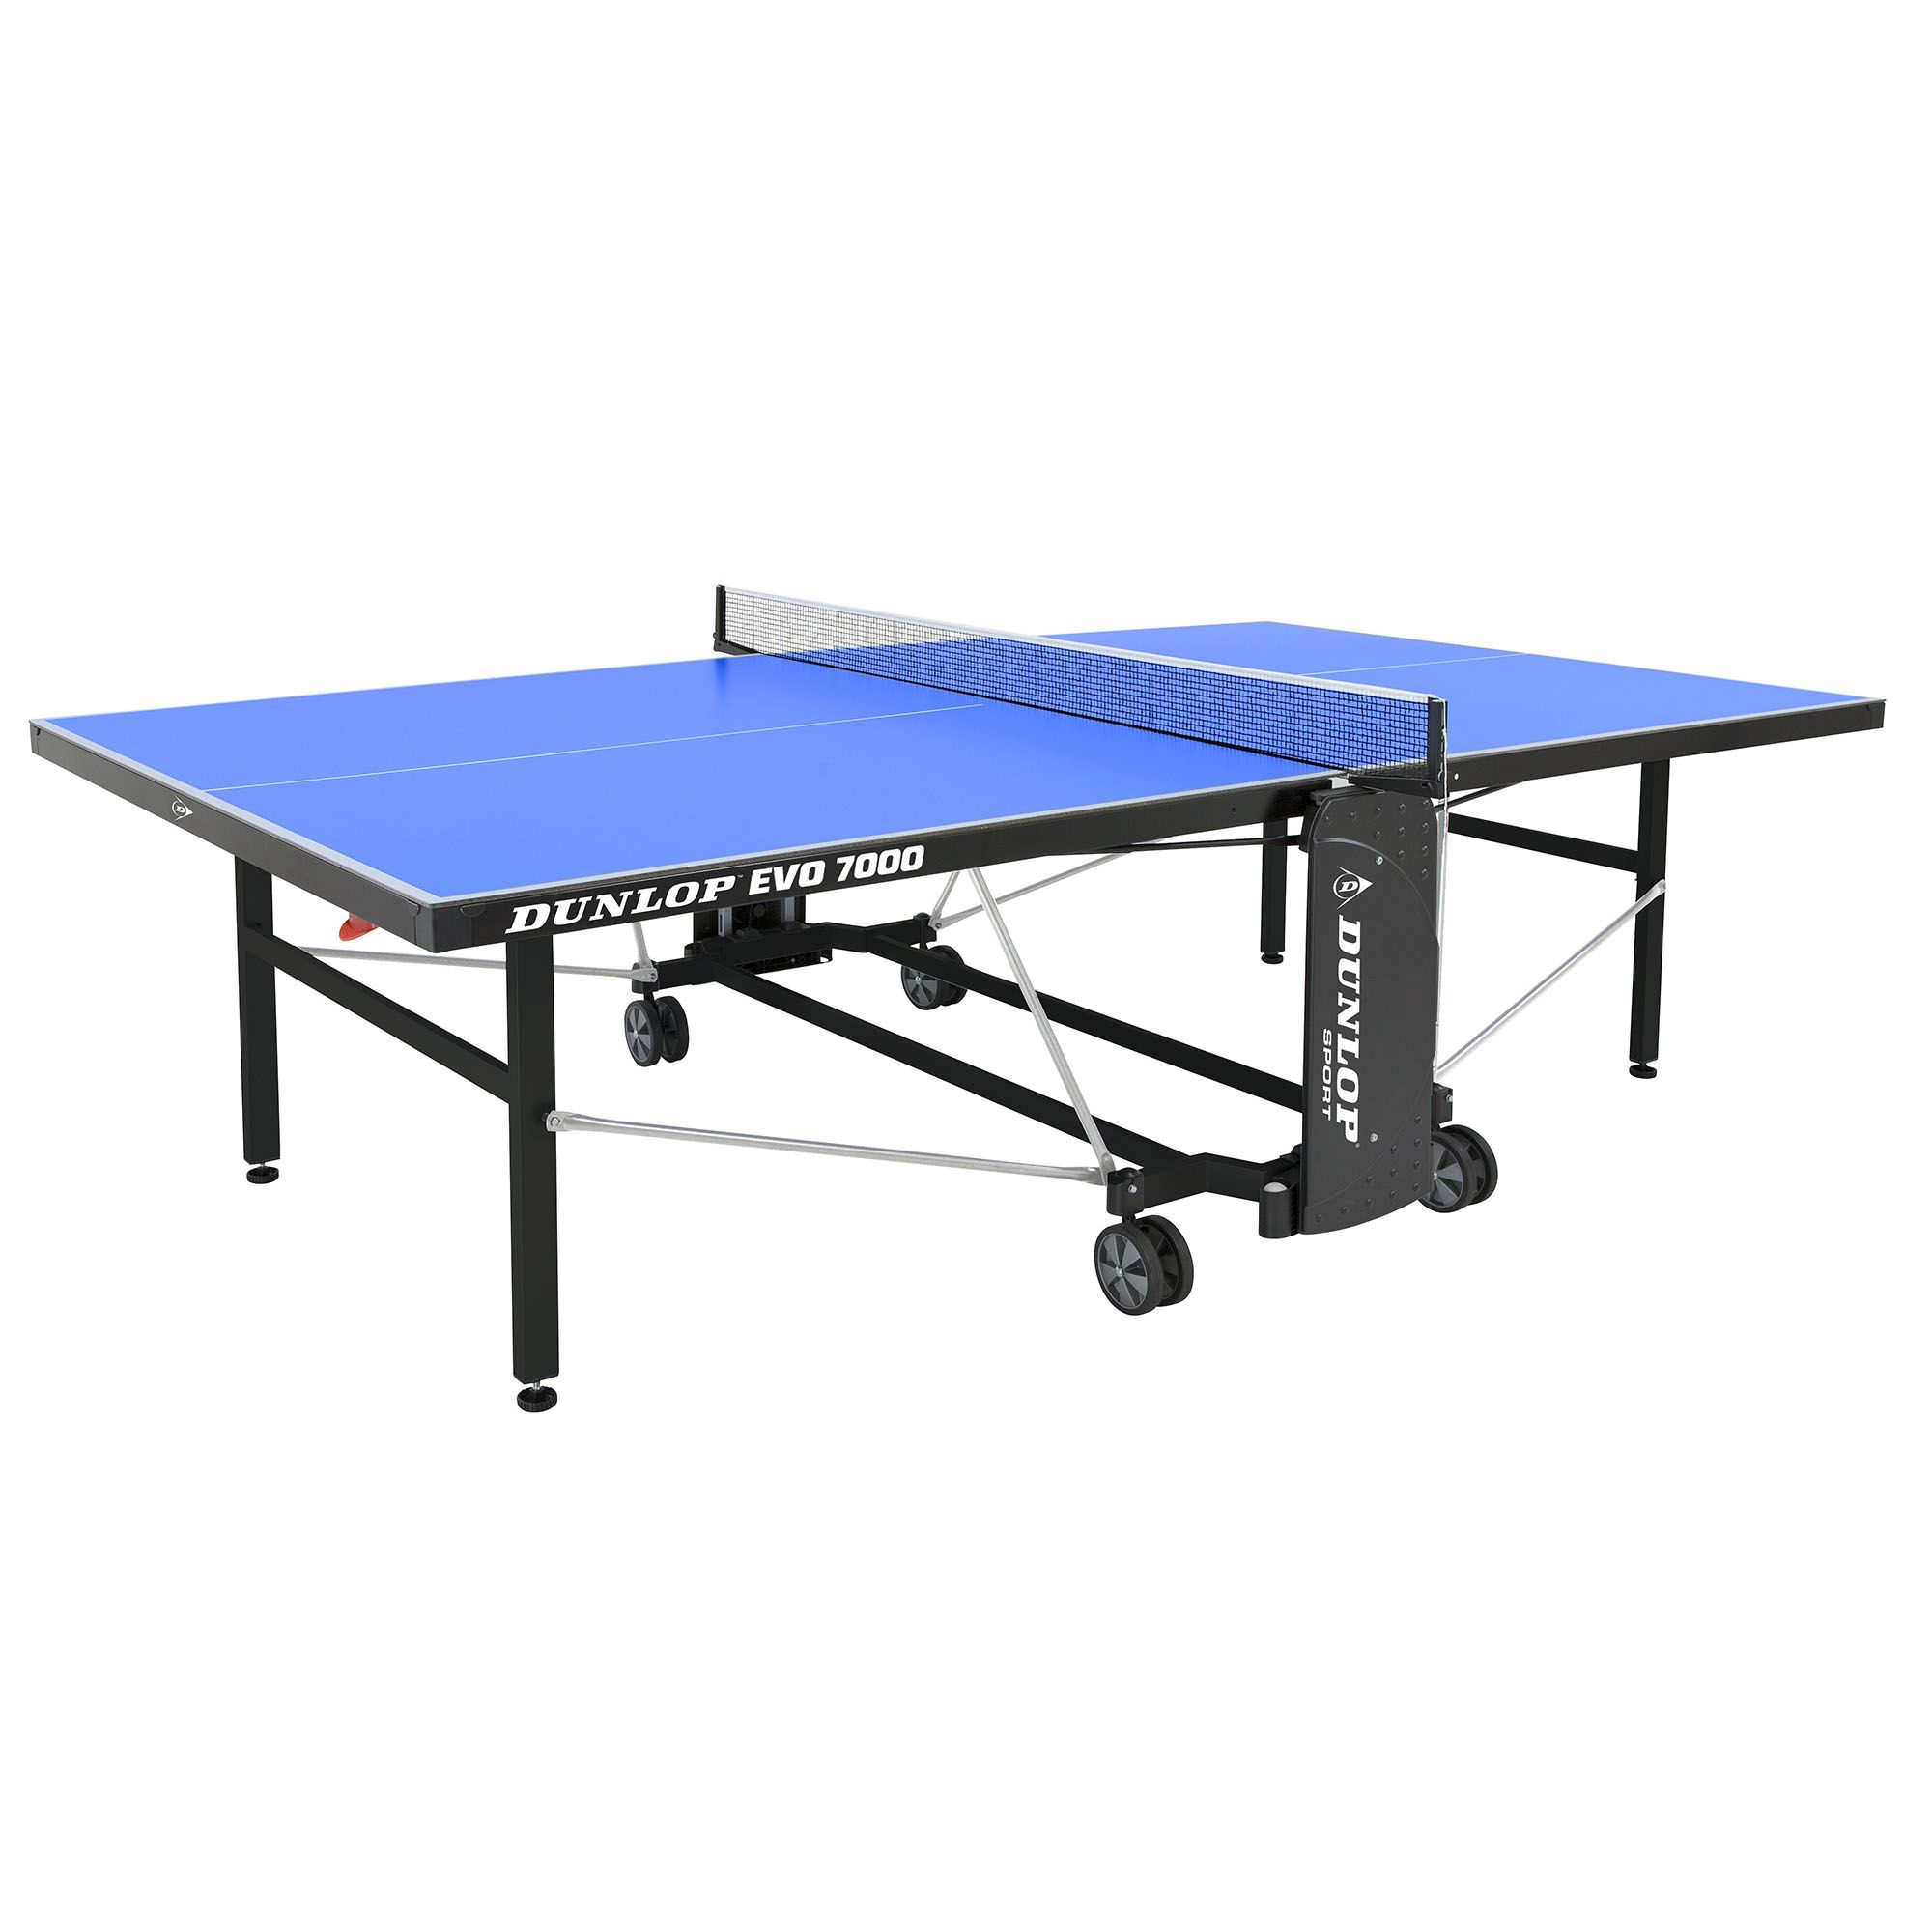 Dunlop evo 7000 outdoor table tennis table - Weatherproof table tennis table ...